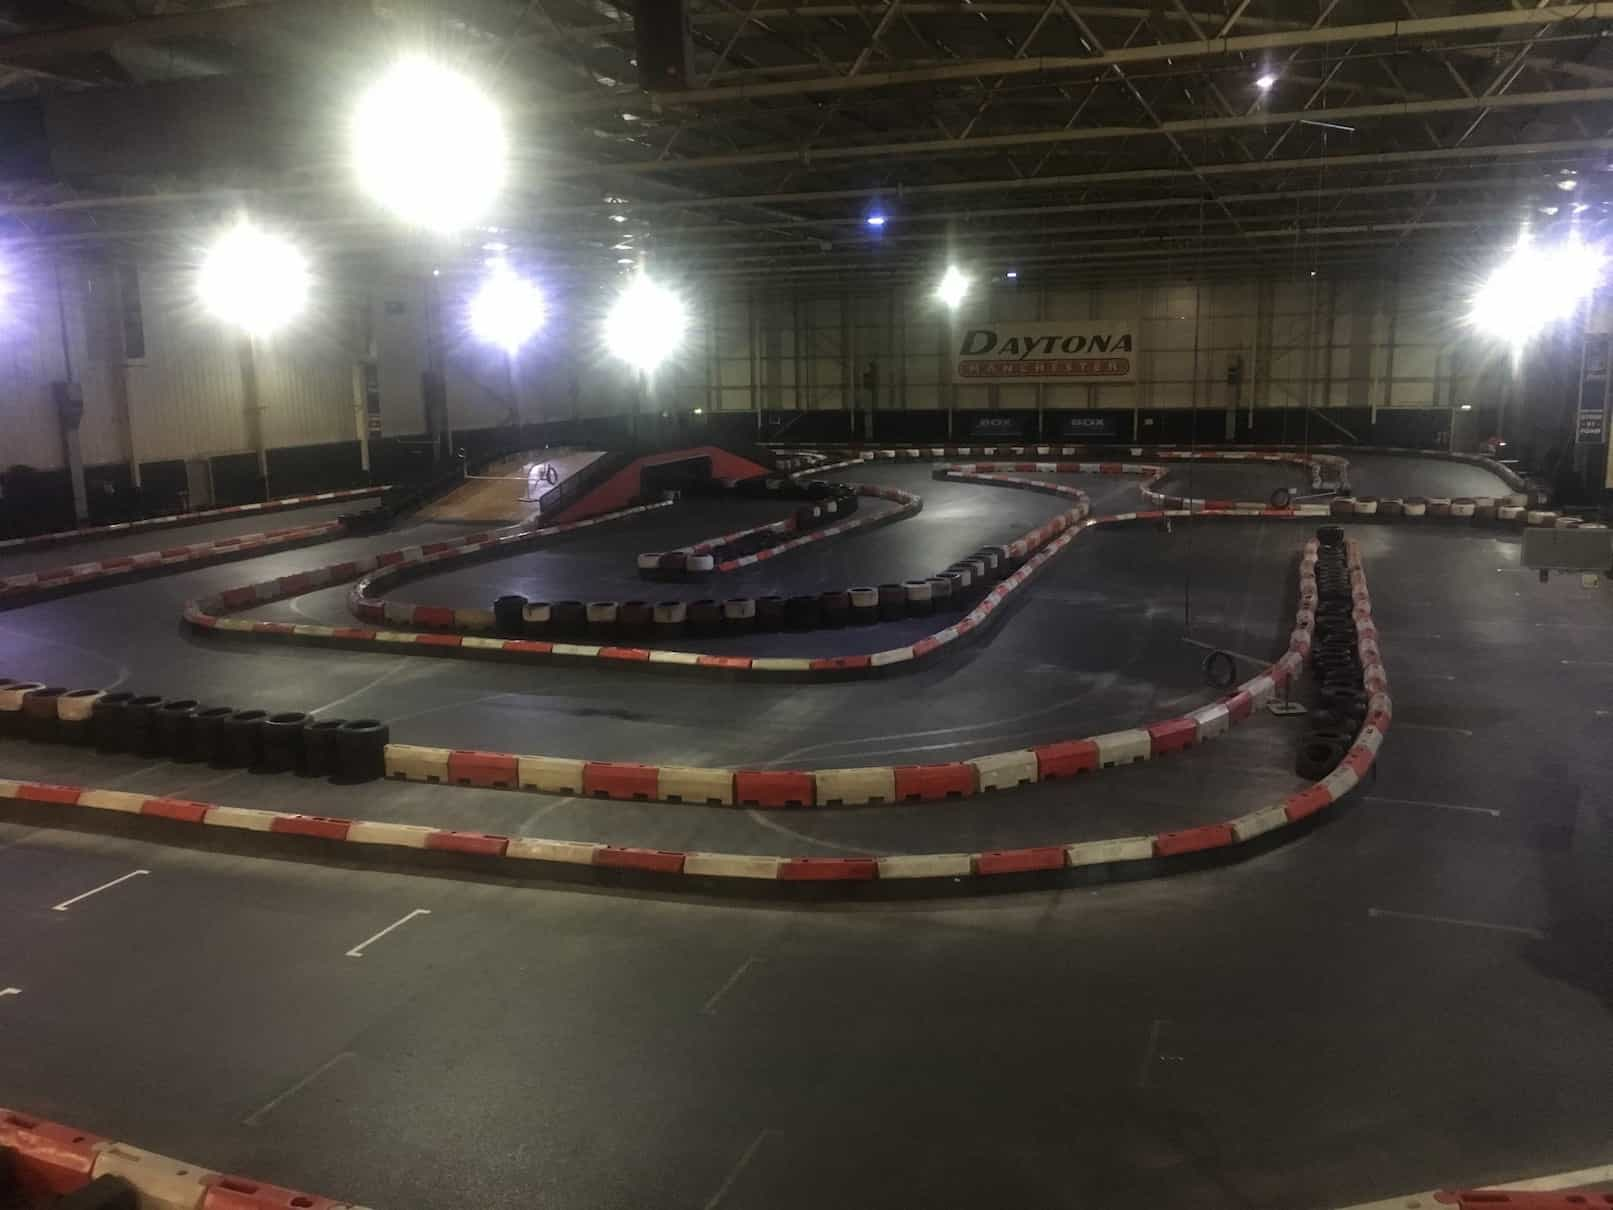 NEW GP CIRCUIT LAYOUT AT DAYTONA MANCHESTER